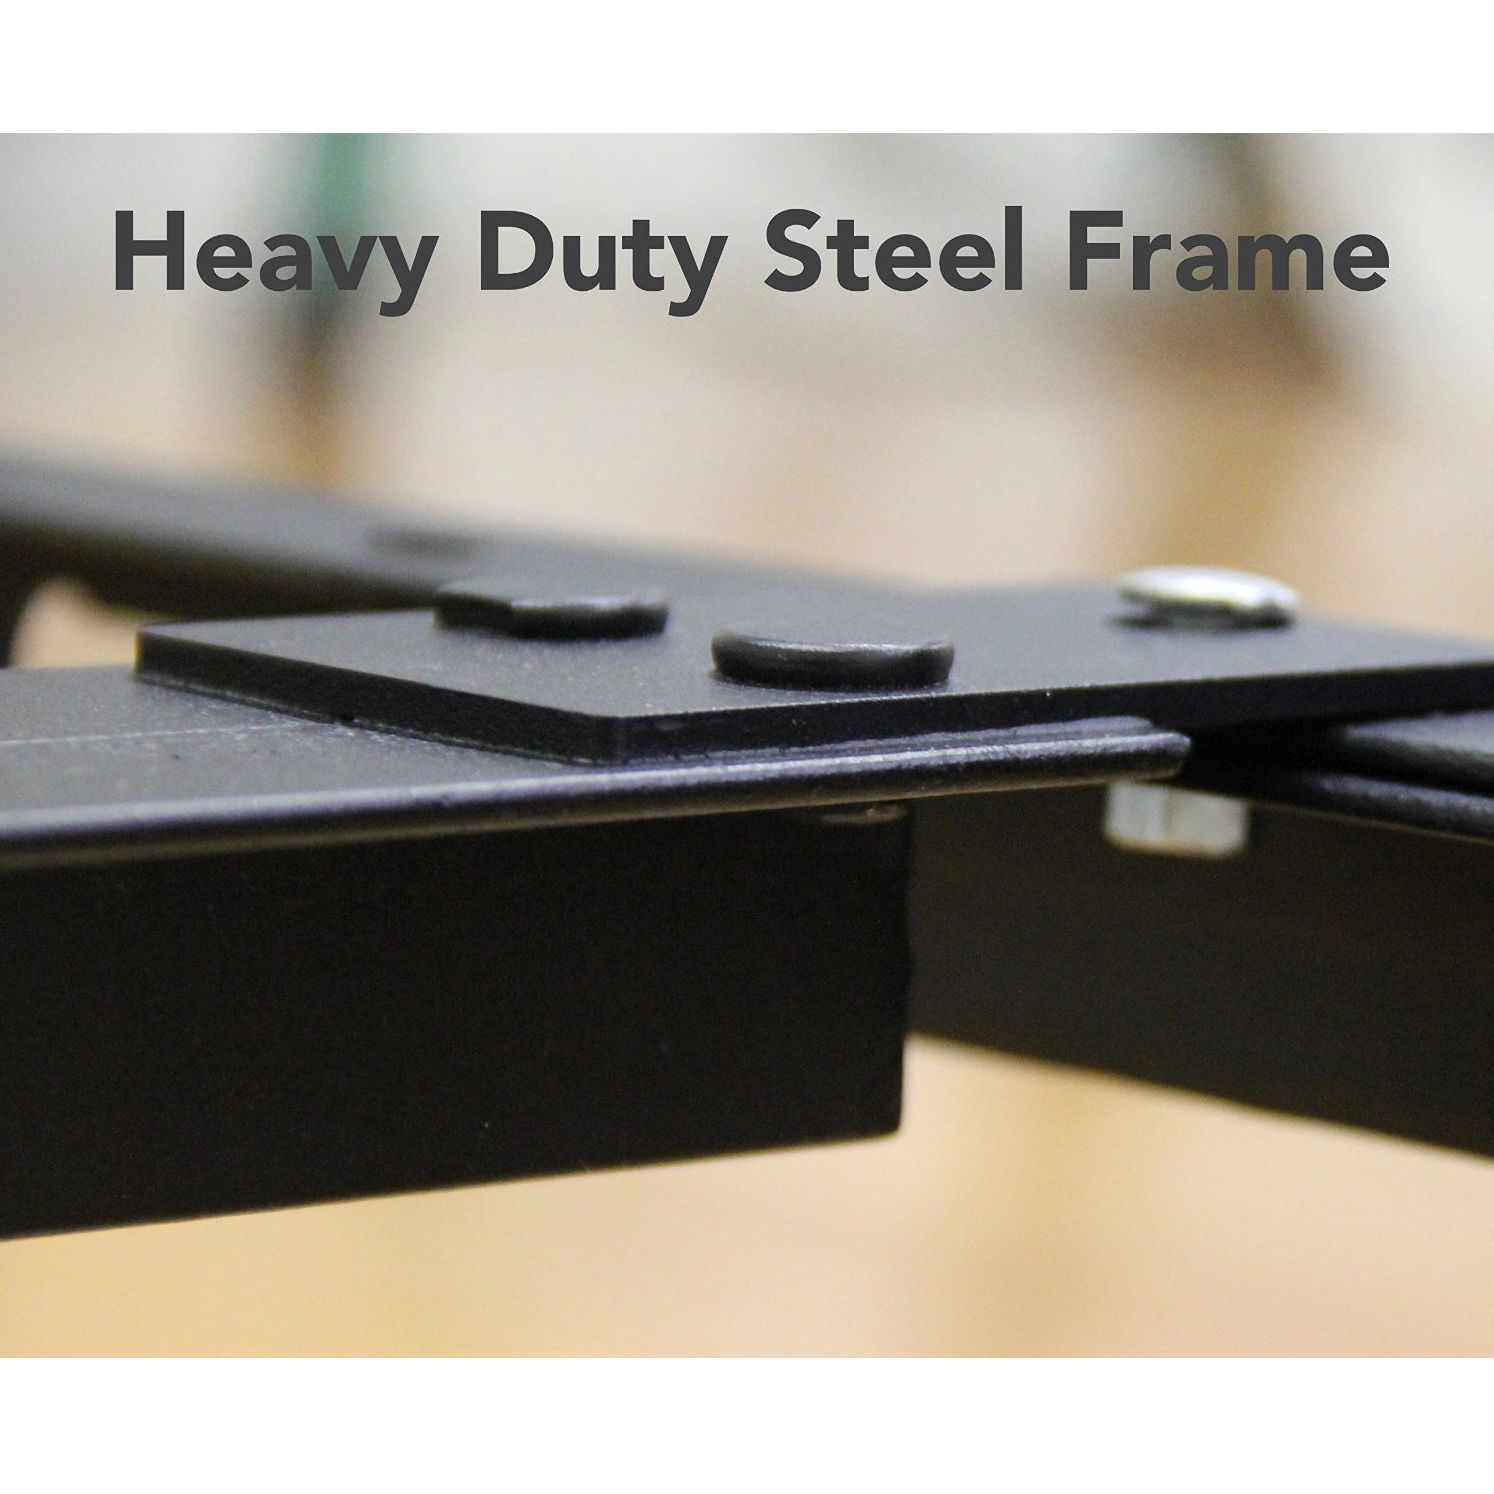 retail price 14900 - Heavy Duty Bed Frame Queen